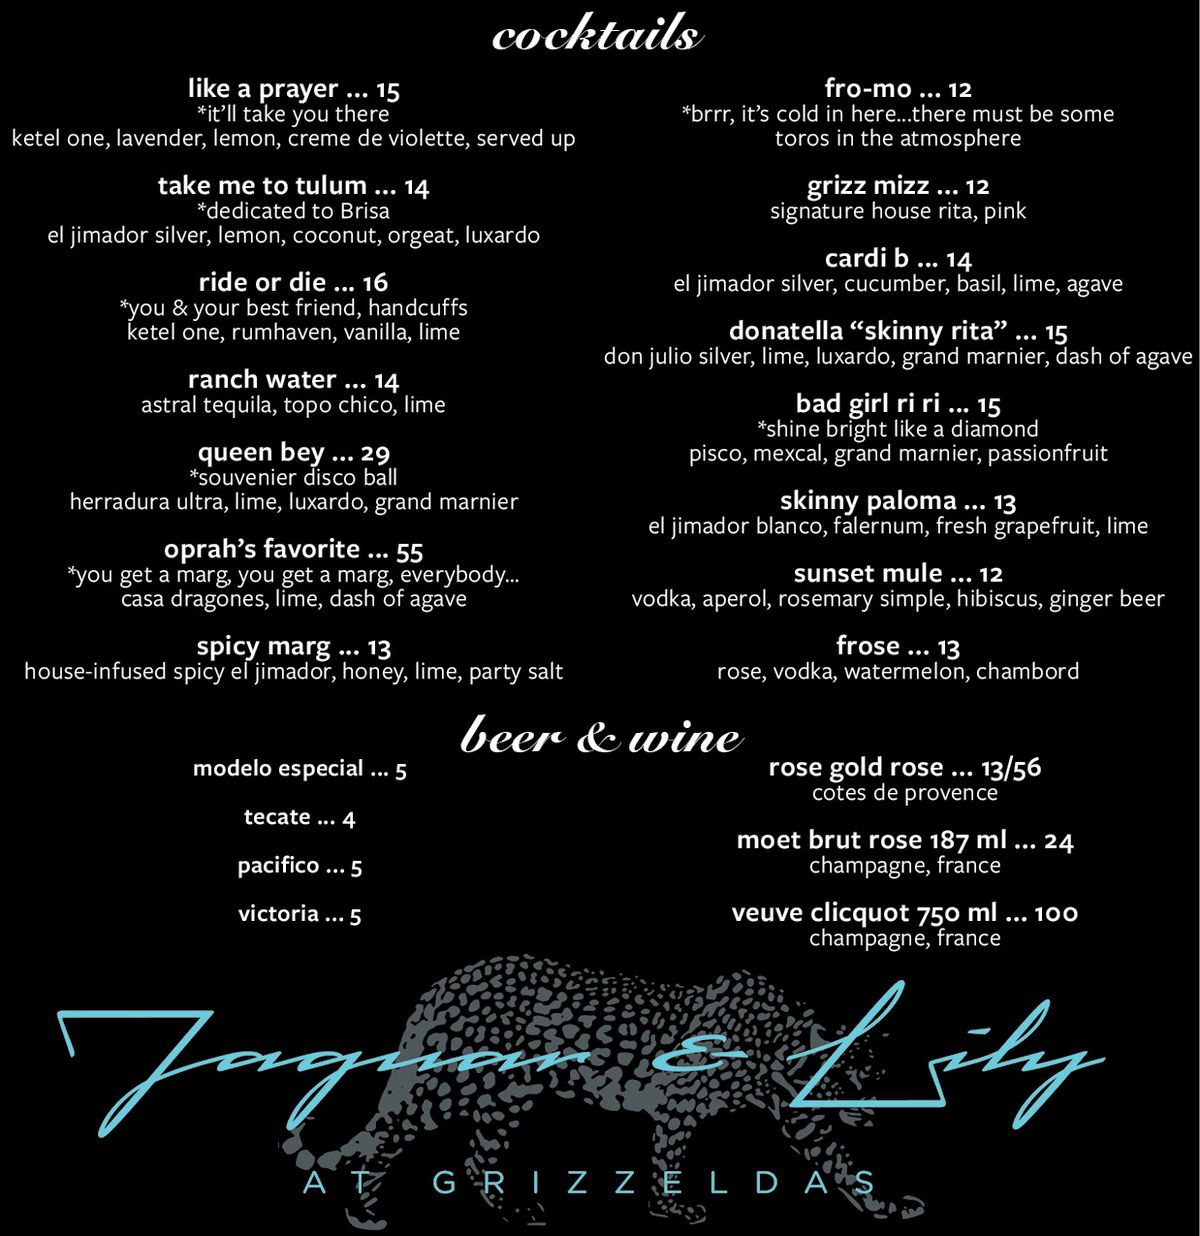 The menu for Jaguar and Lily